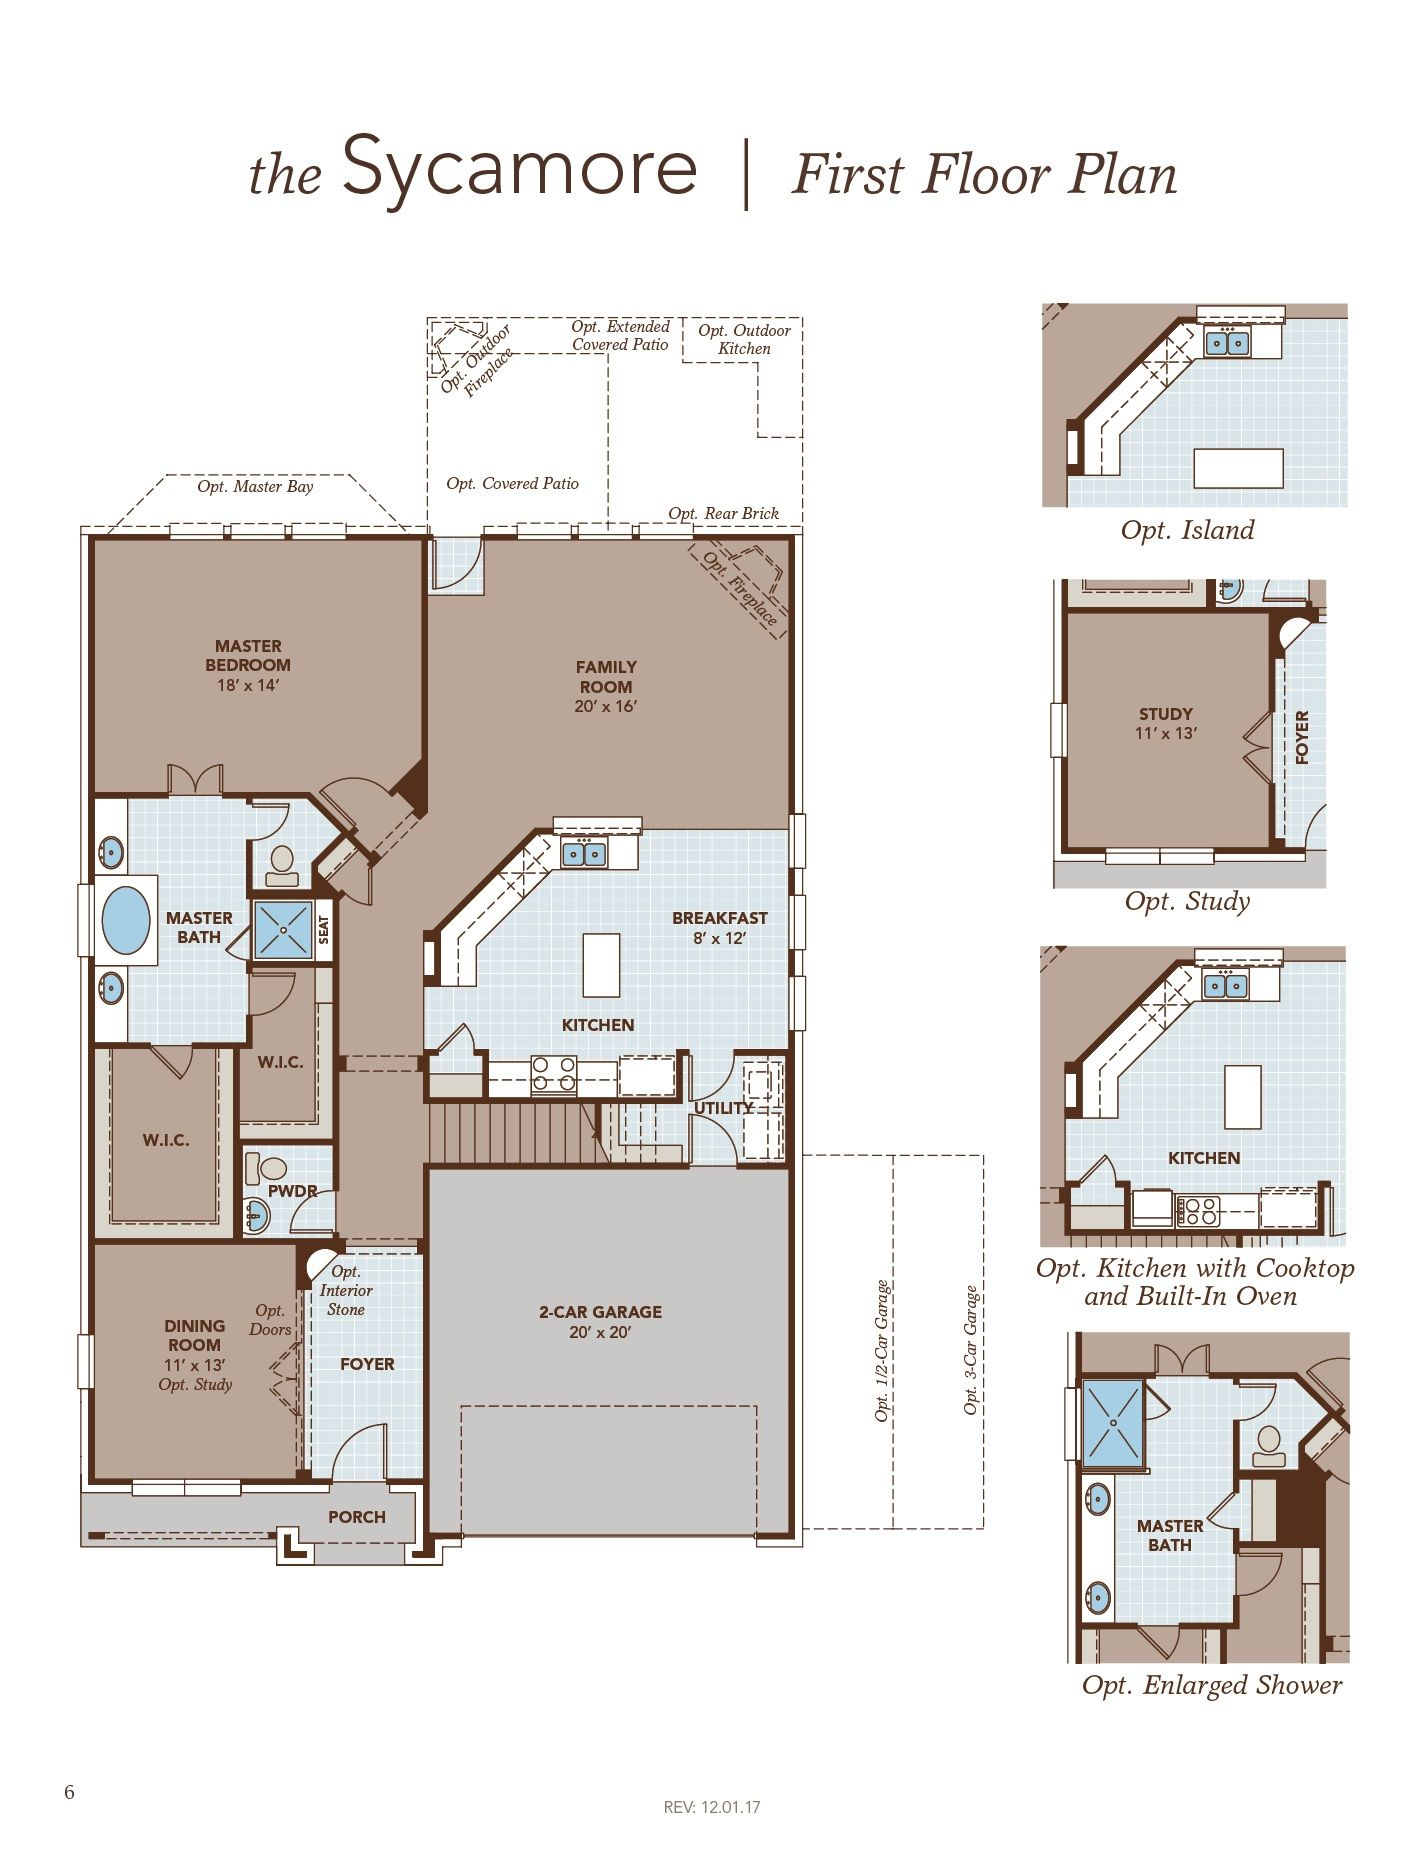 Sycamore First Floor Plan